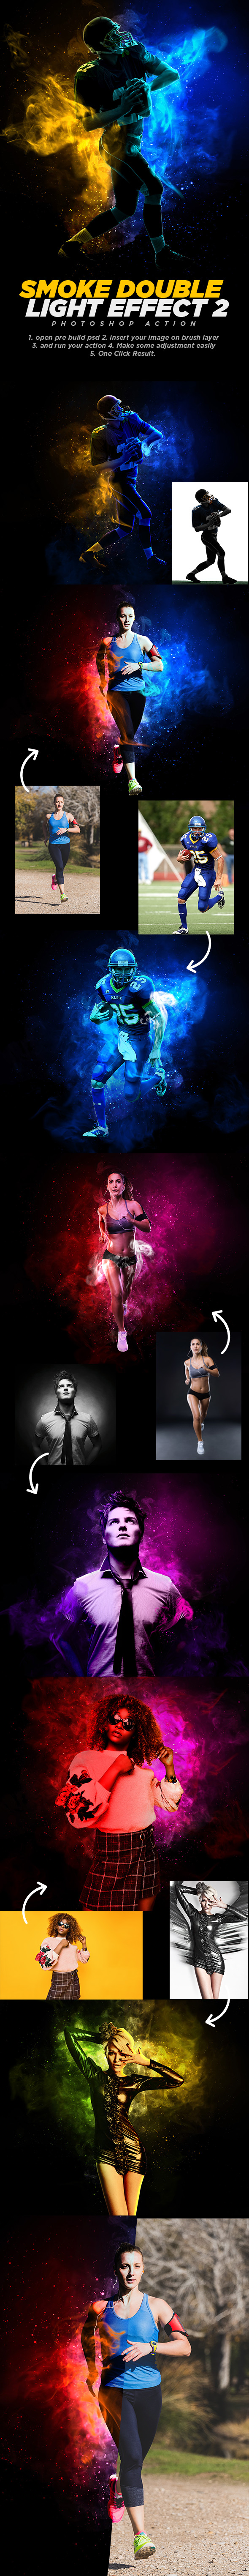 Smoke Double Light Effect Photoshop Action Vol.2 - Photo Effects Actions